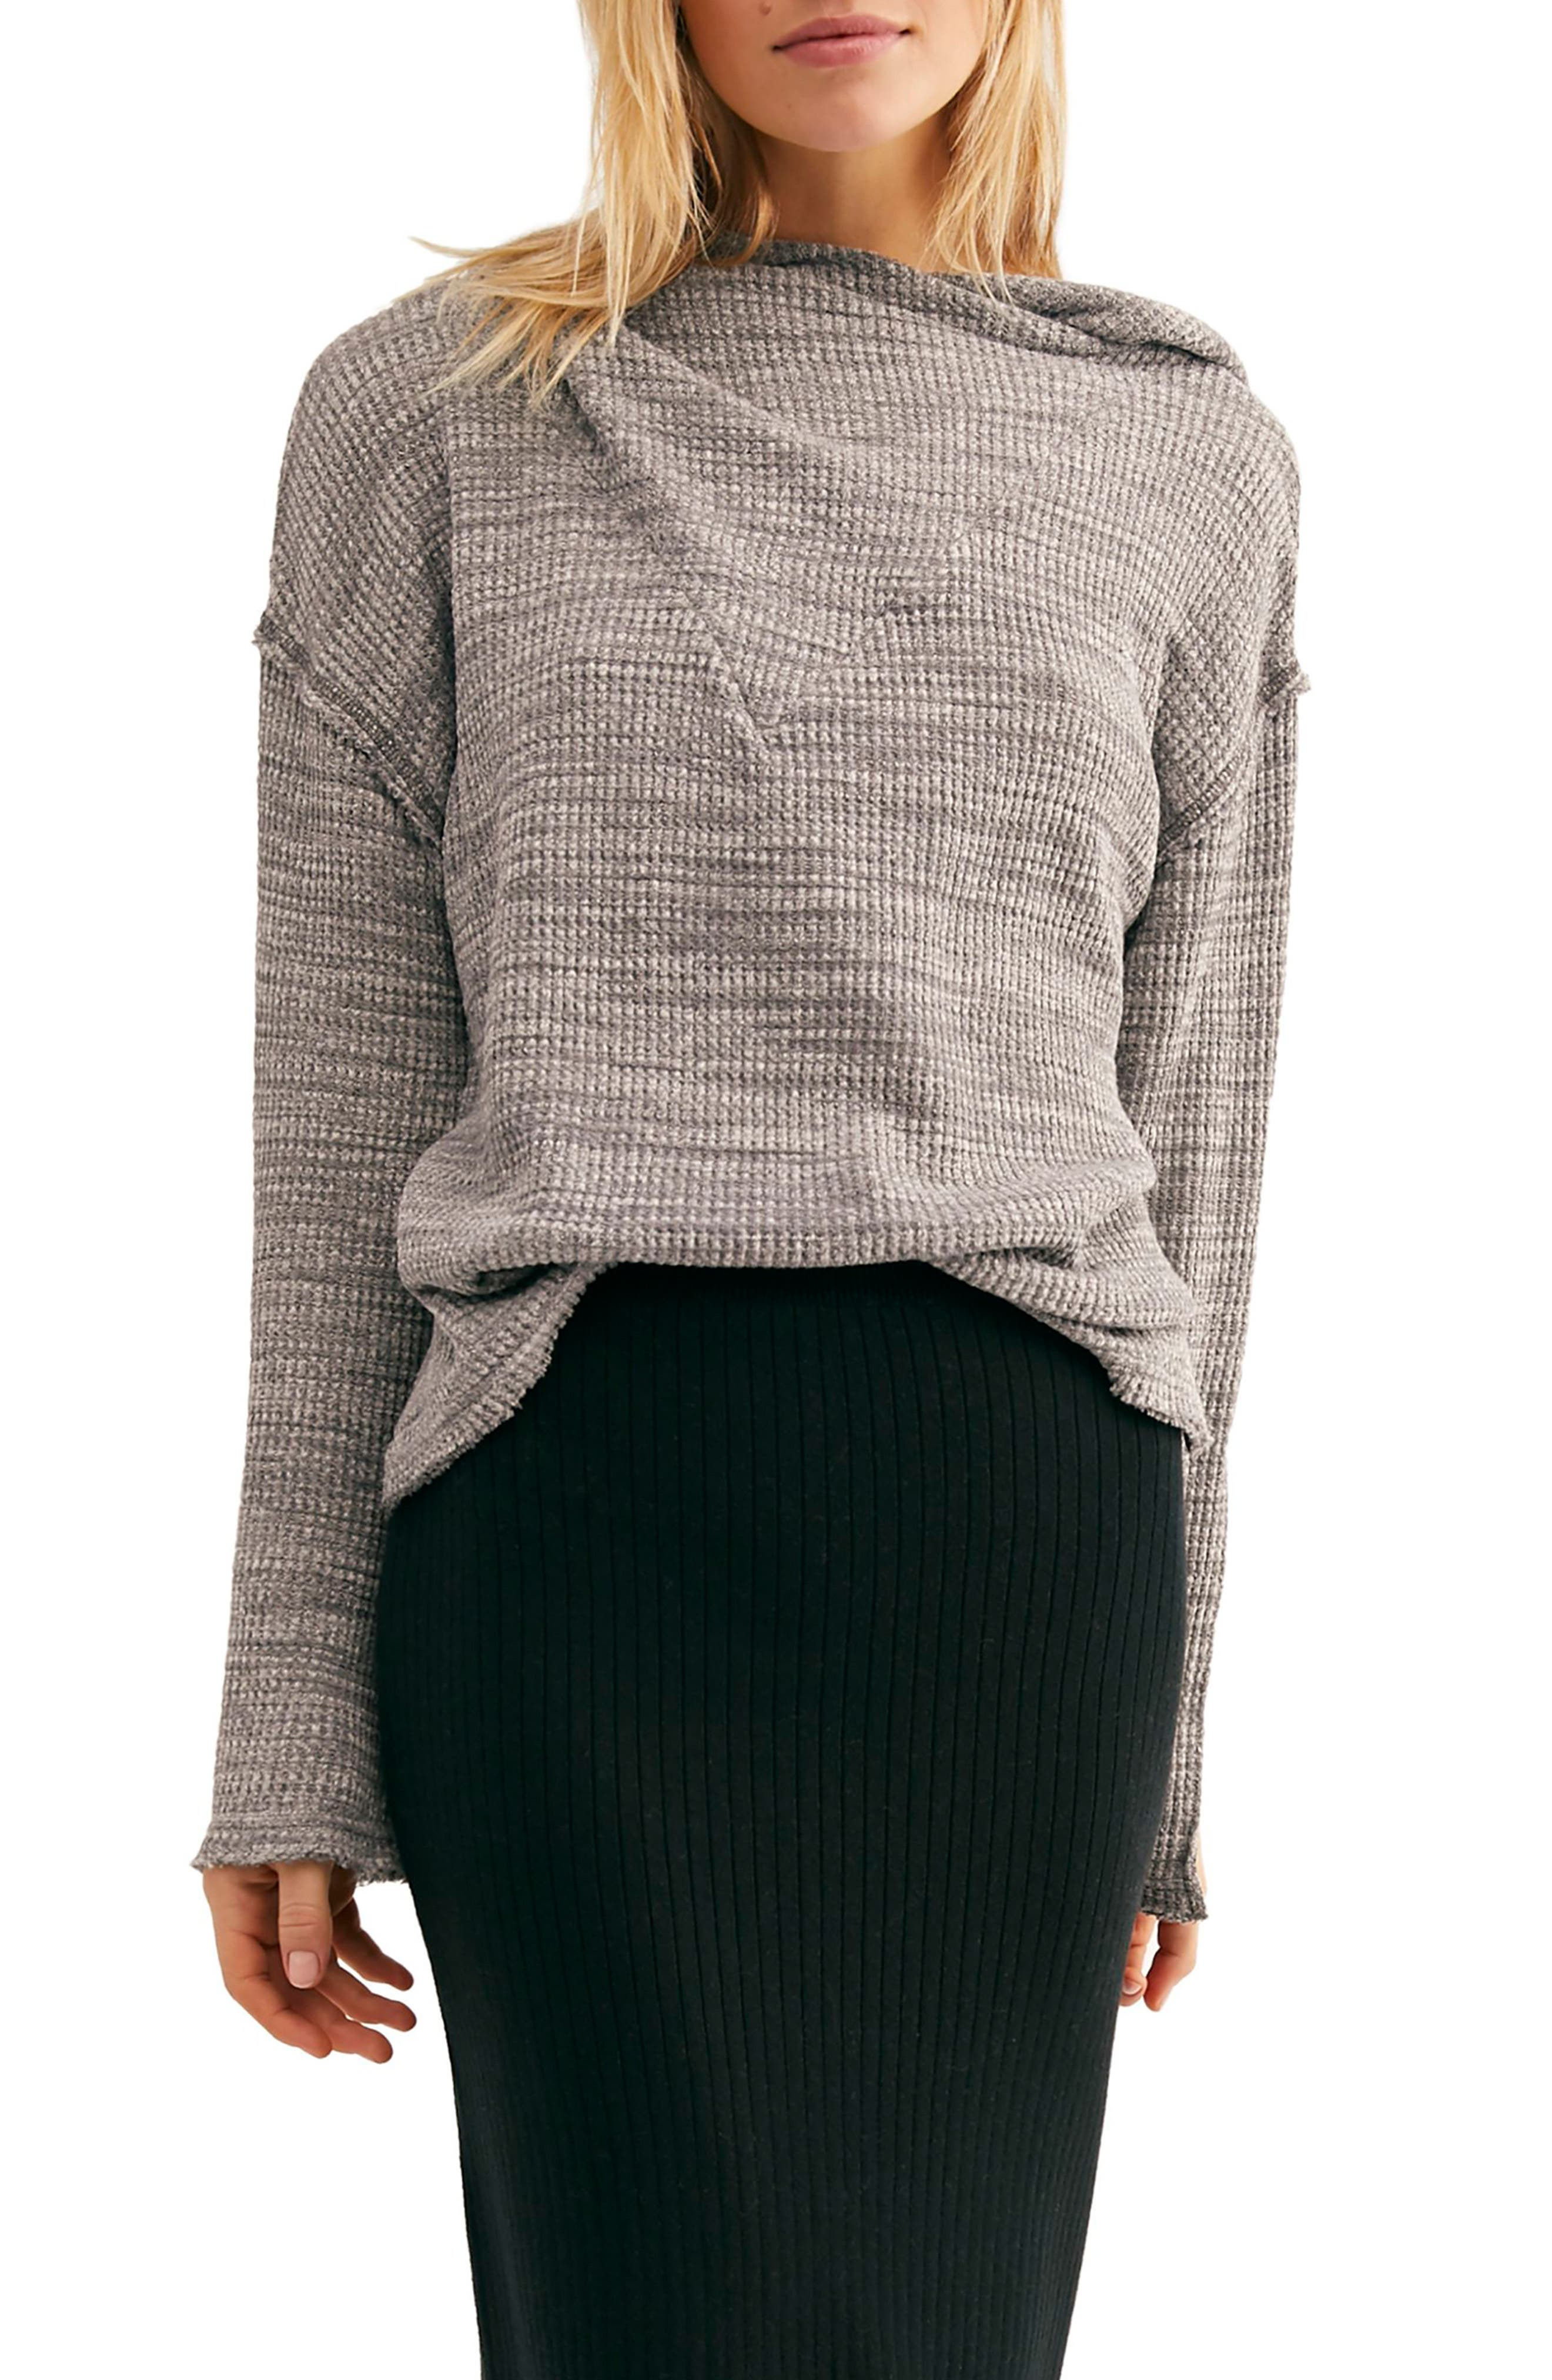 FREE PEOPLE, Endless Summer by Free People Hooded Knit Top, Main thumbnail 1, color, GREY